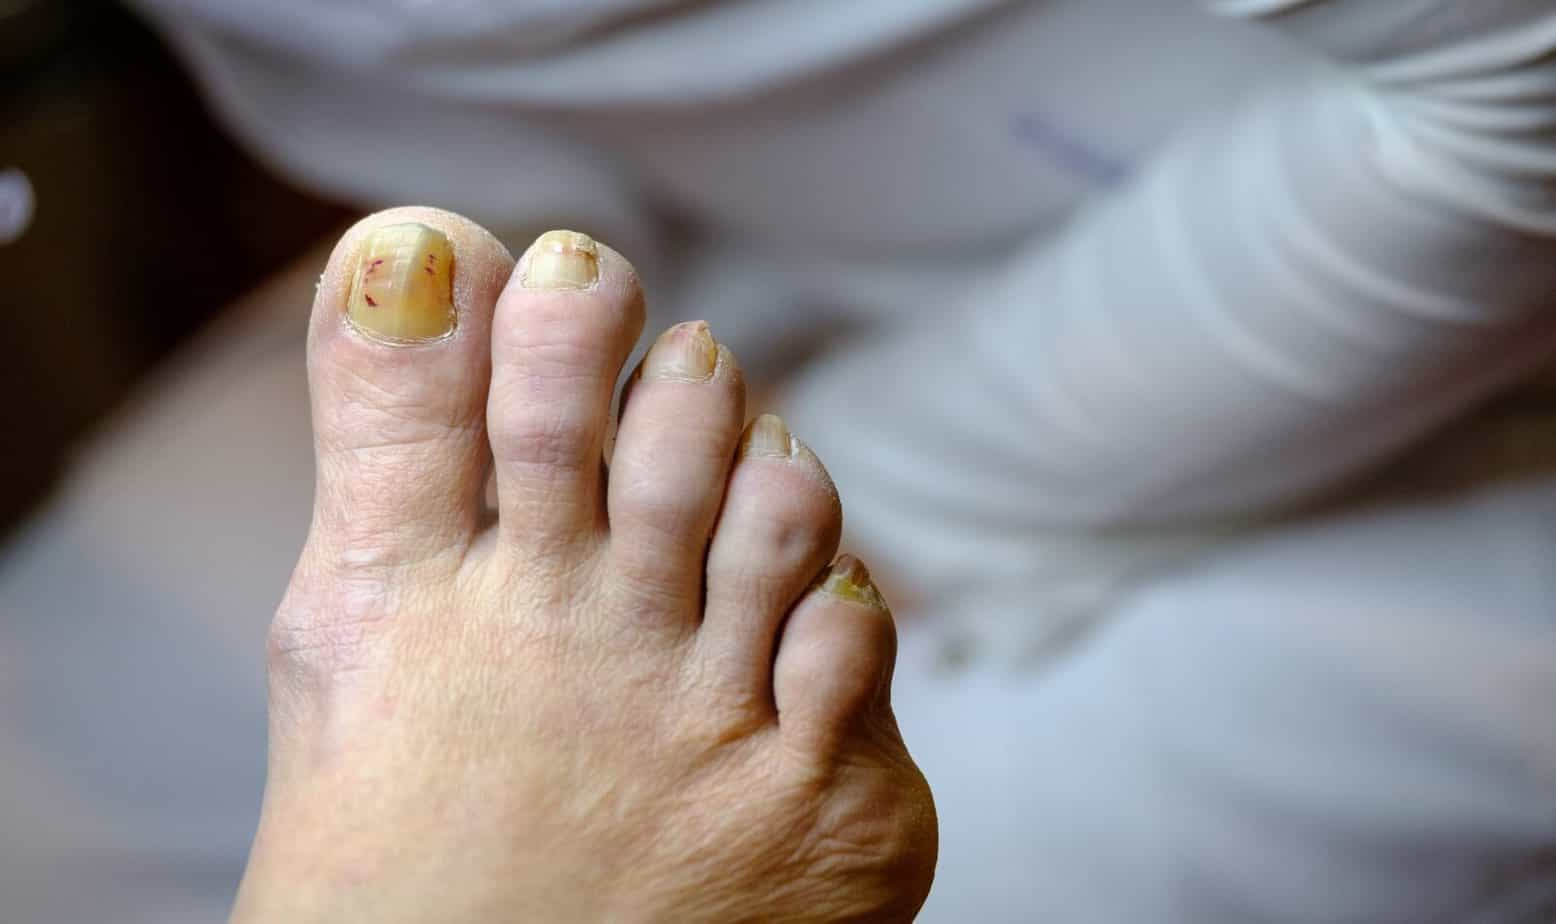 Sick unhealthy nails on the foot of a man